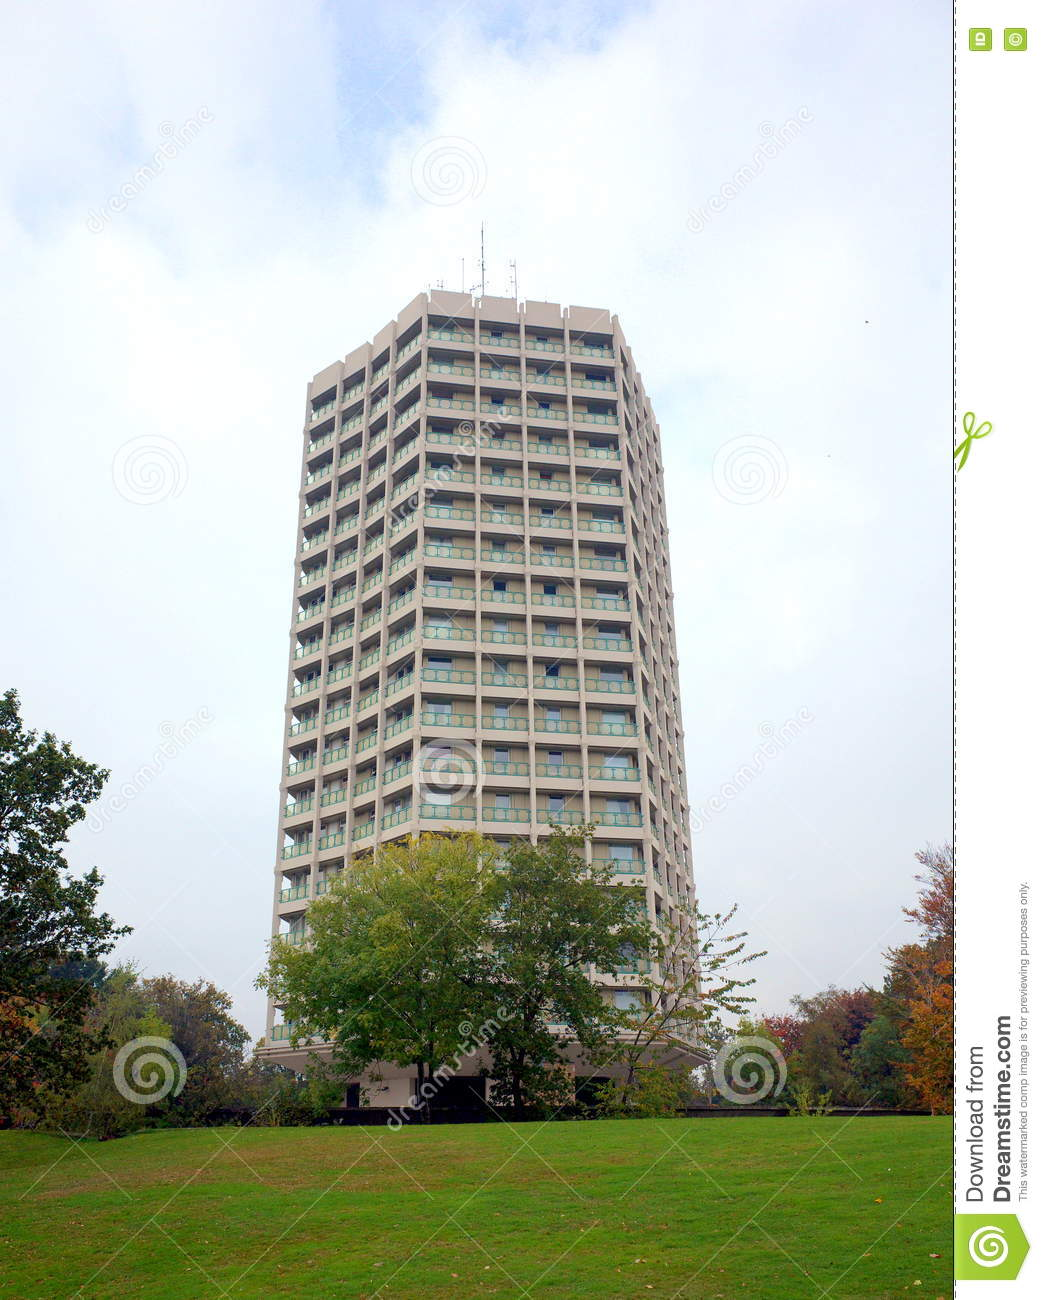 bracknellengland october 25 2016 point royal a concrete apartment block in bracknell england was completed in 1964 from a design by philip dowson and - Concrete Apartment 2016